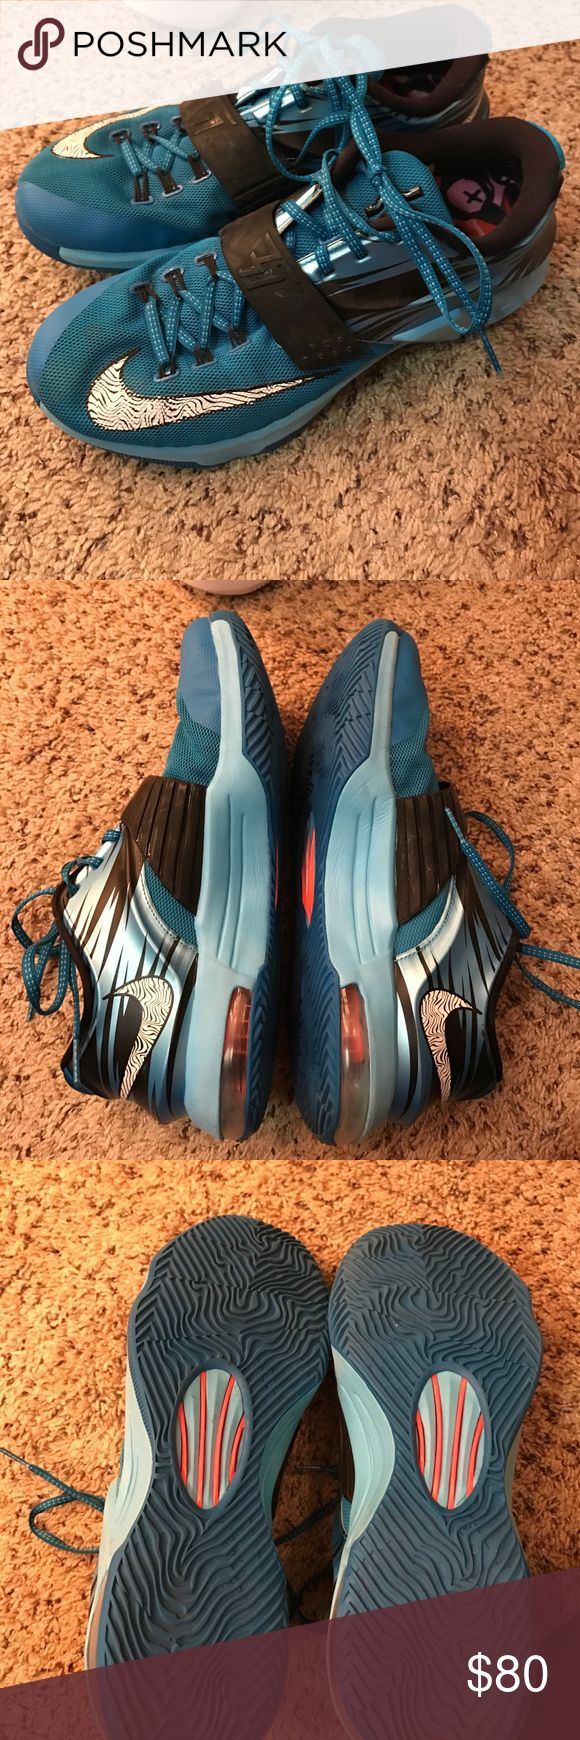 KD basketball shoes men size 9.5/ women's 11 Fairly worn, Nike soles are switched out for more supportive ones Nike Shoes Sneakers